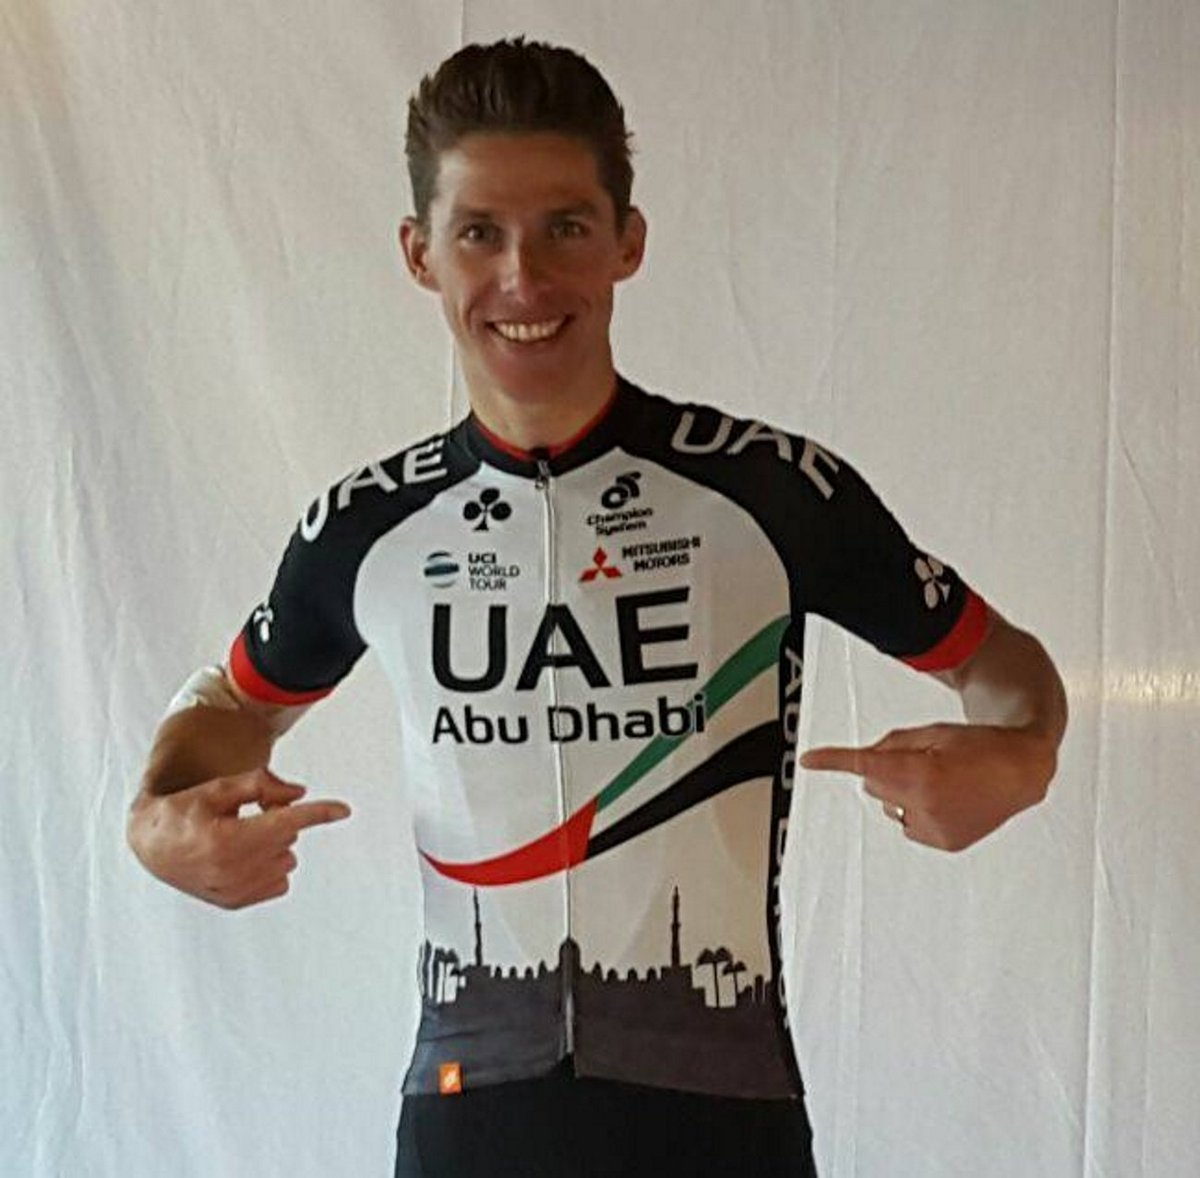 Image result for photos UAE rui costa cycling